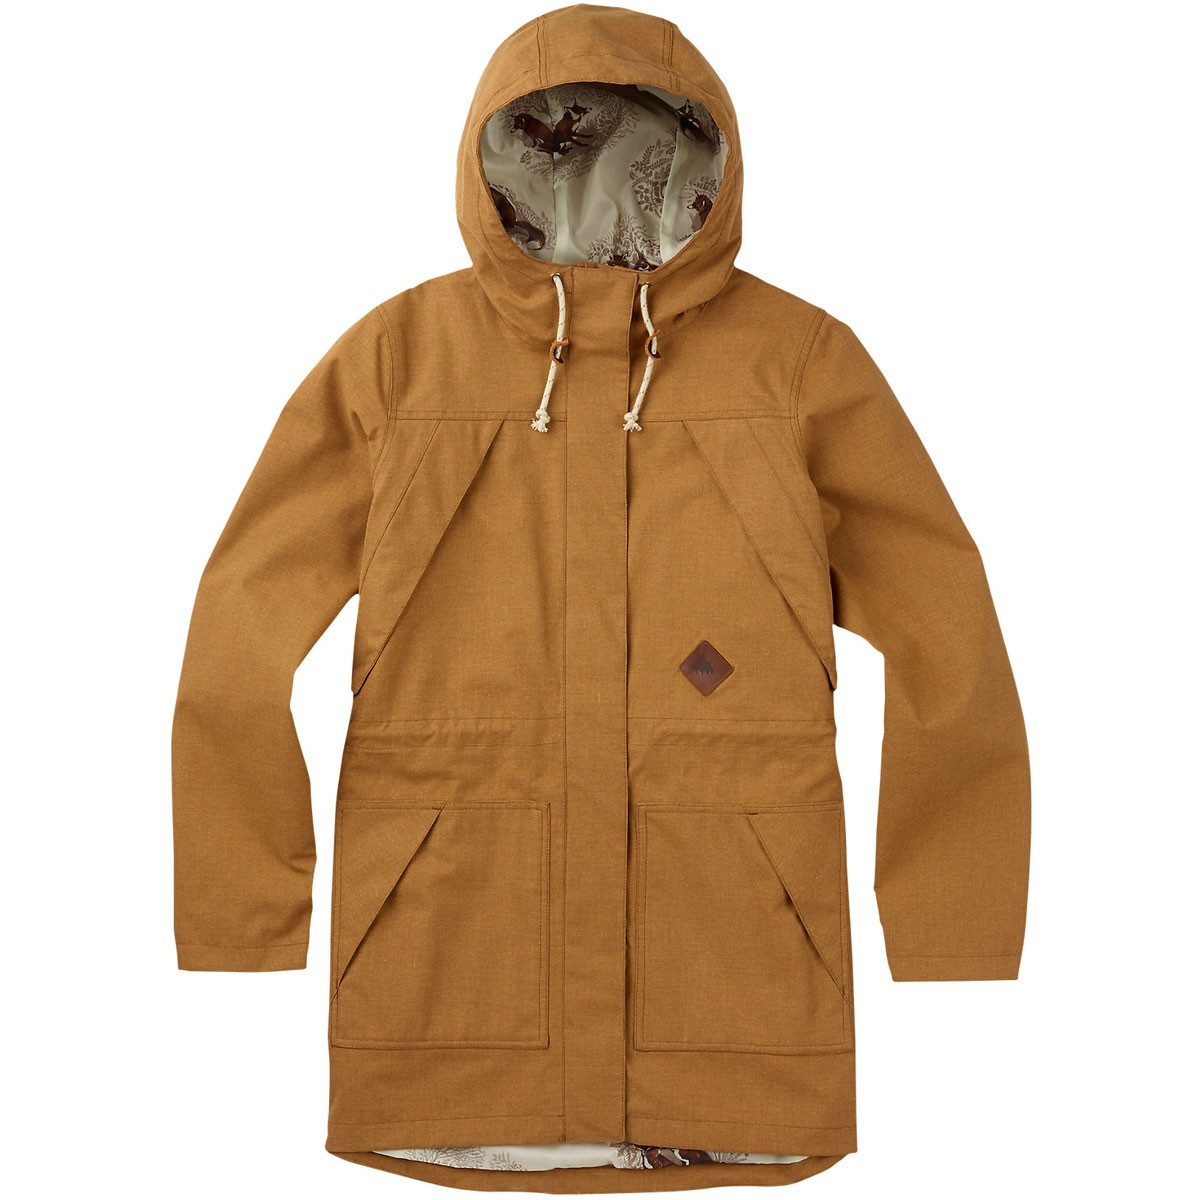 burton-sadie-jacket-monks-robe-heather.1506846285.jpg fc53bd1ac9